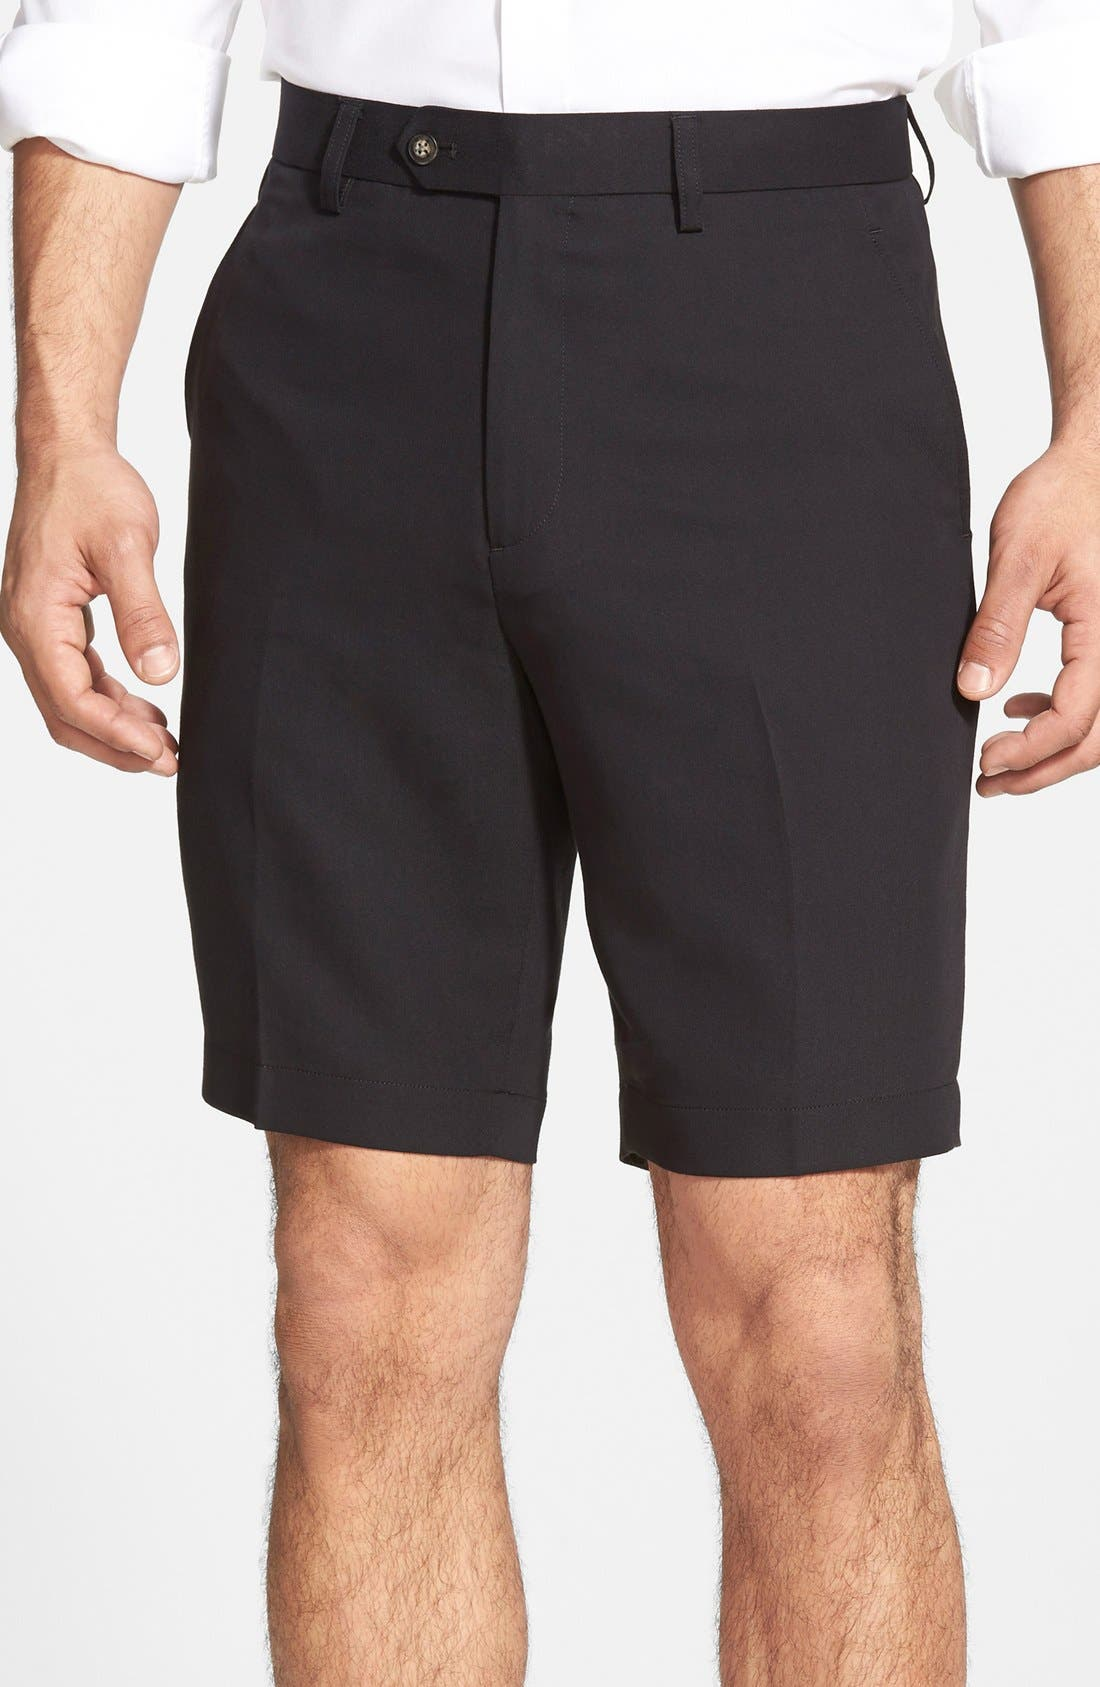 Alternate Image 1 Selected - Cutter & Buck Microfiber Twill Shorts (Online Only)